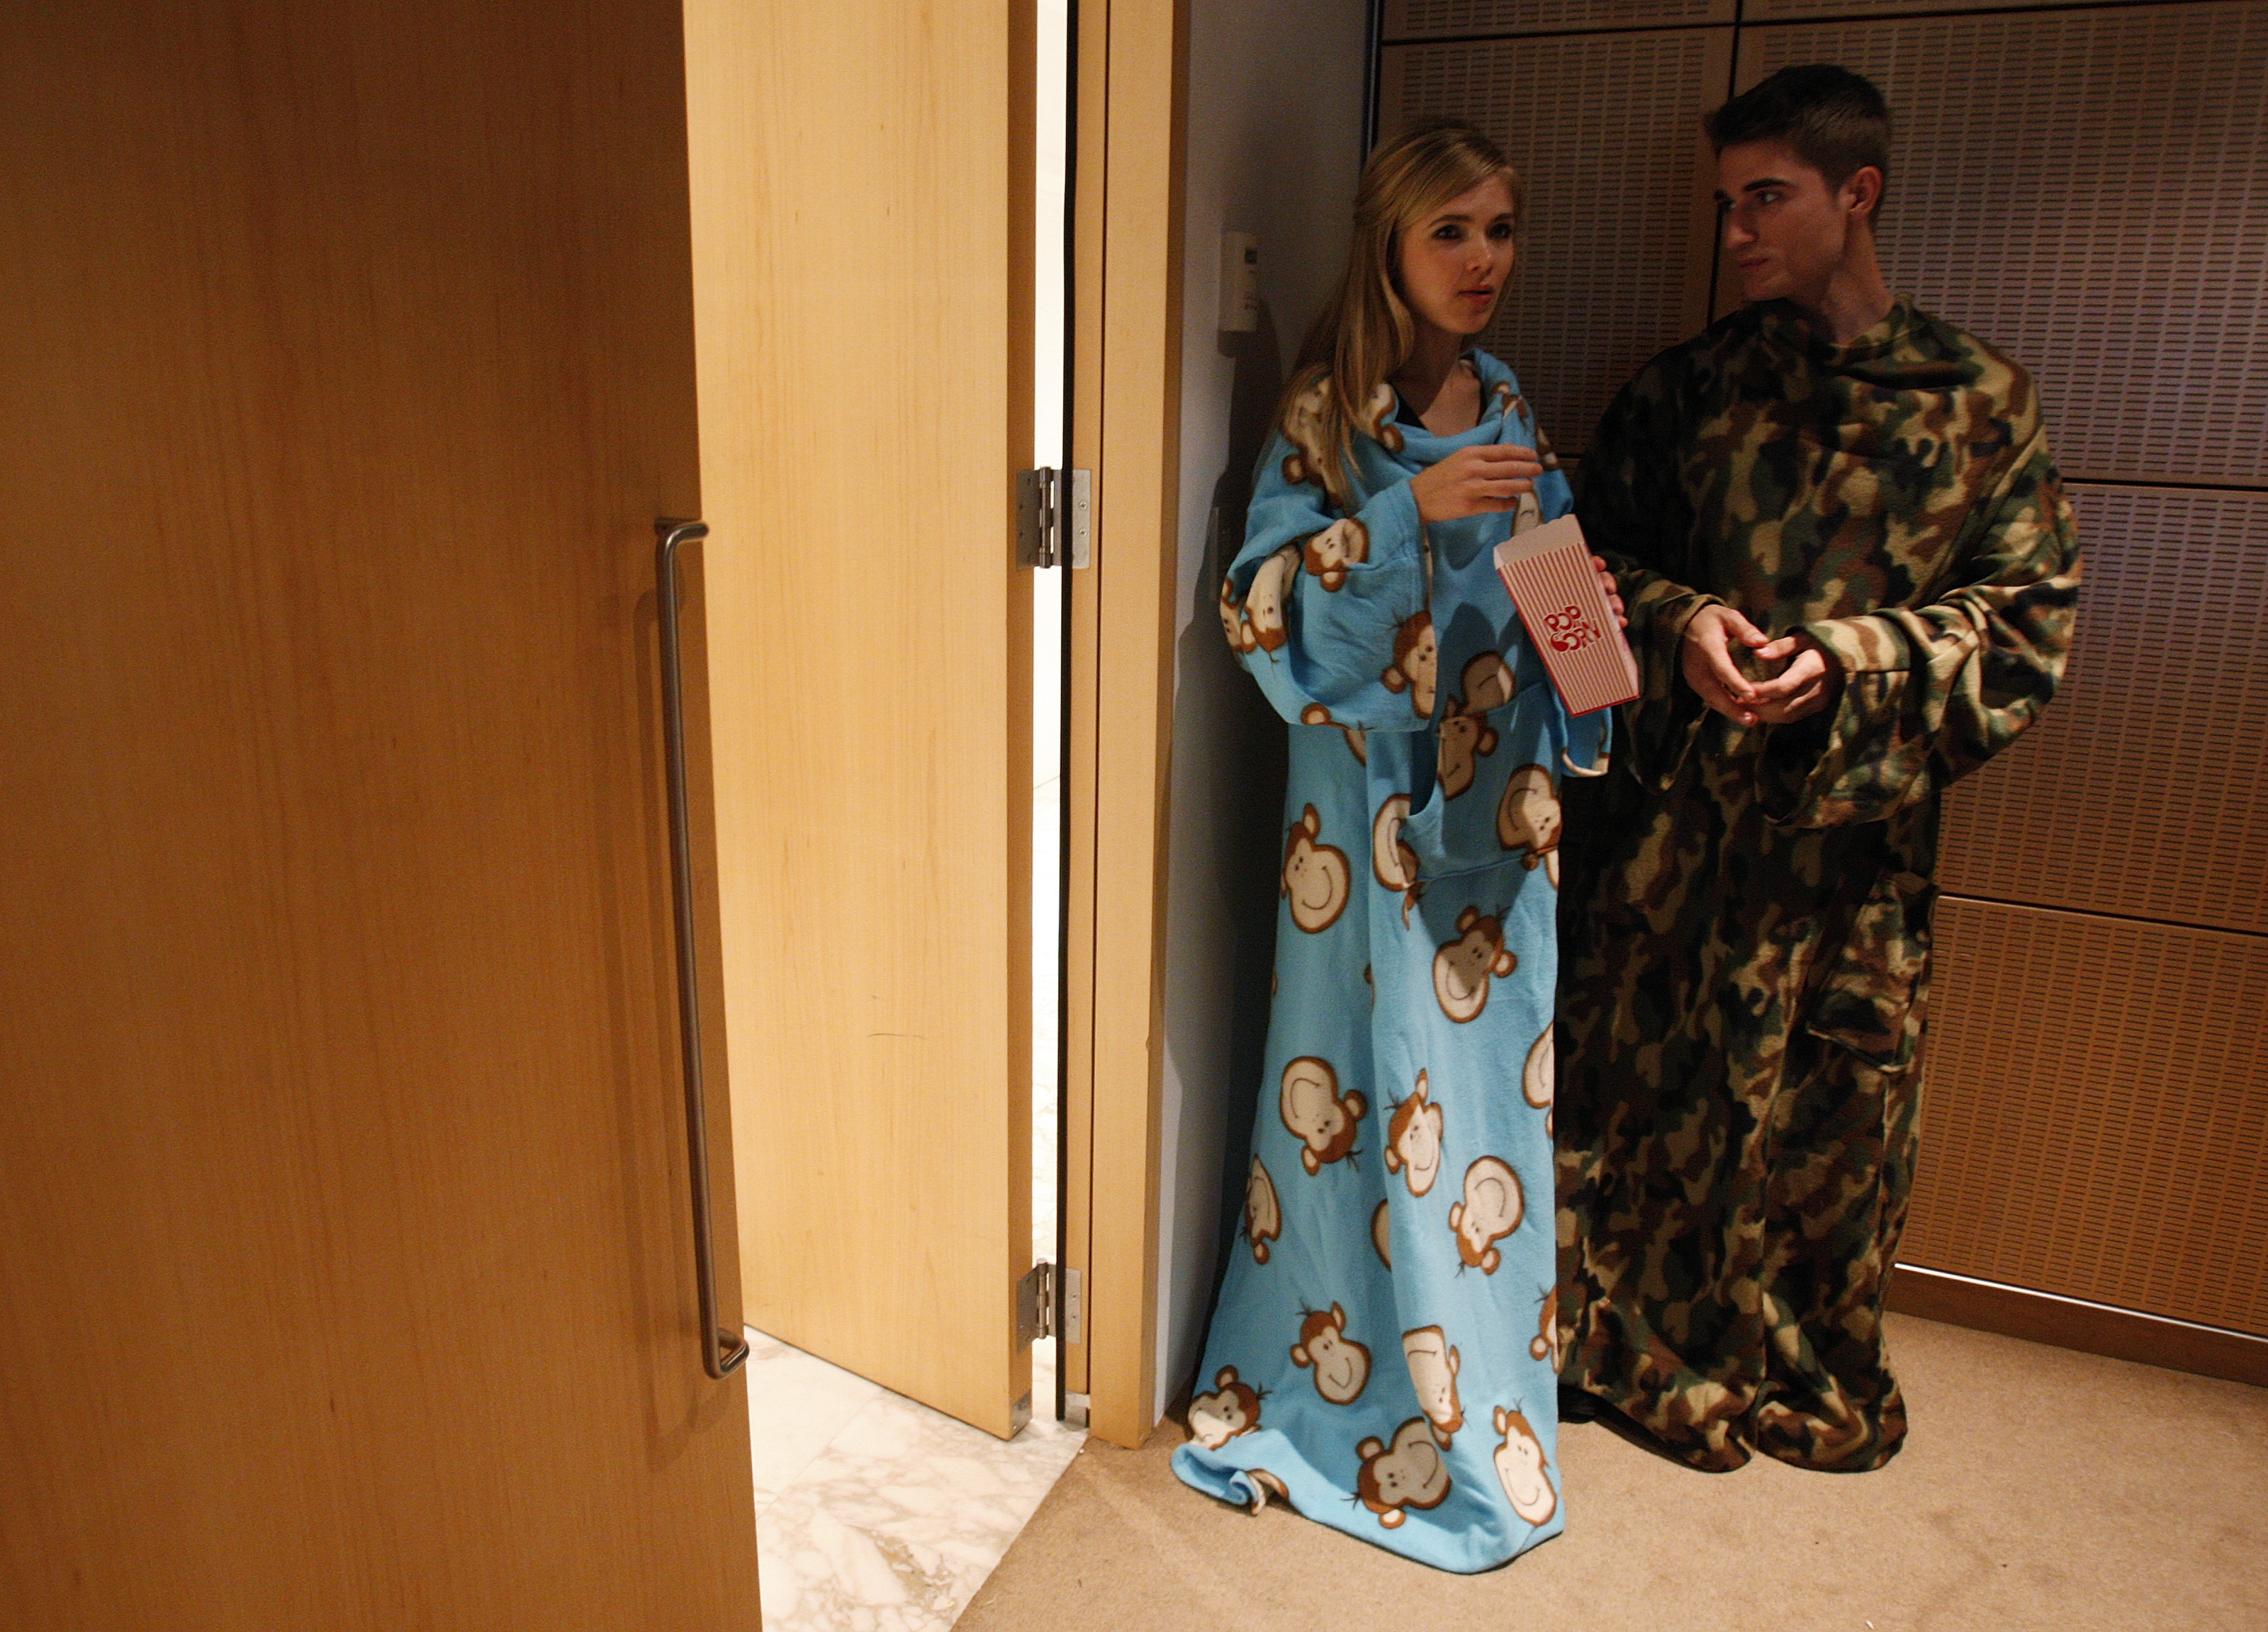 Models wearing snuggies eat popcorn after the Snuggie Choice Film Awards in New York